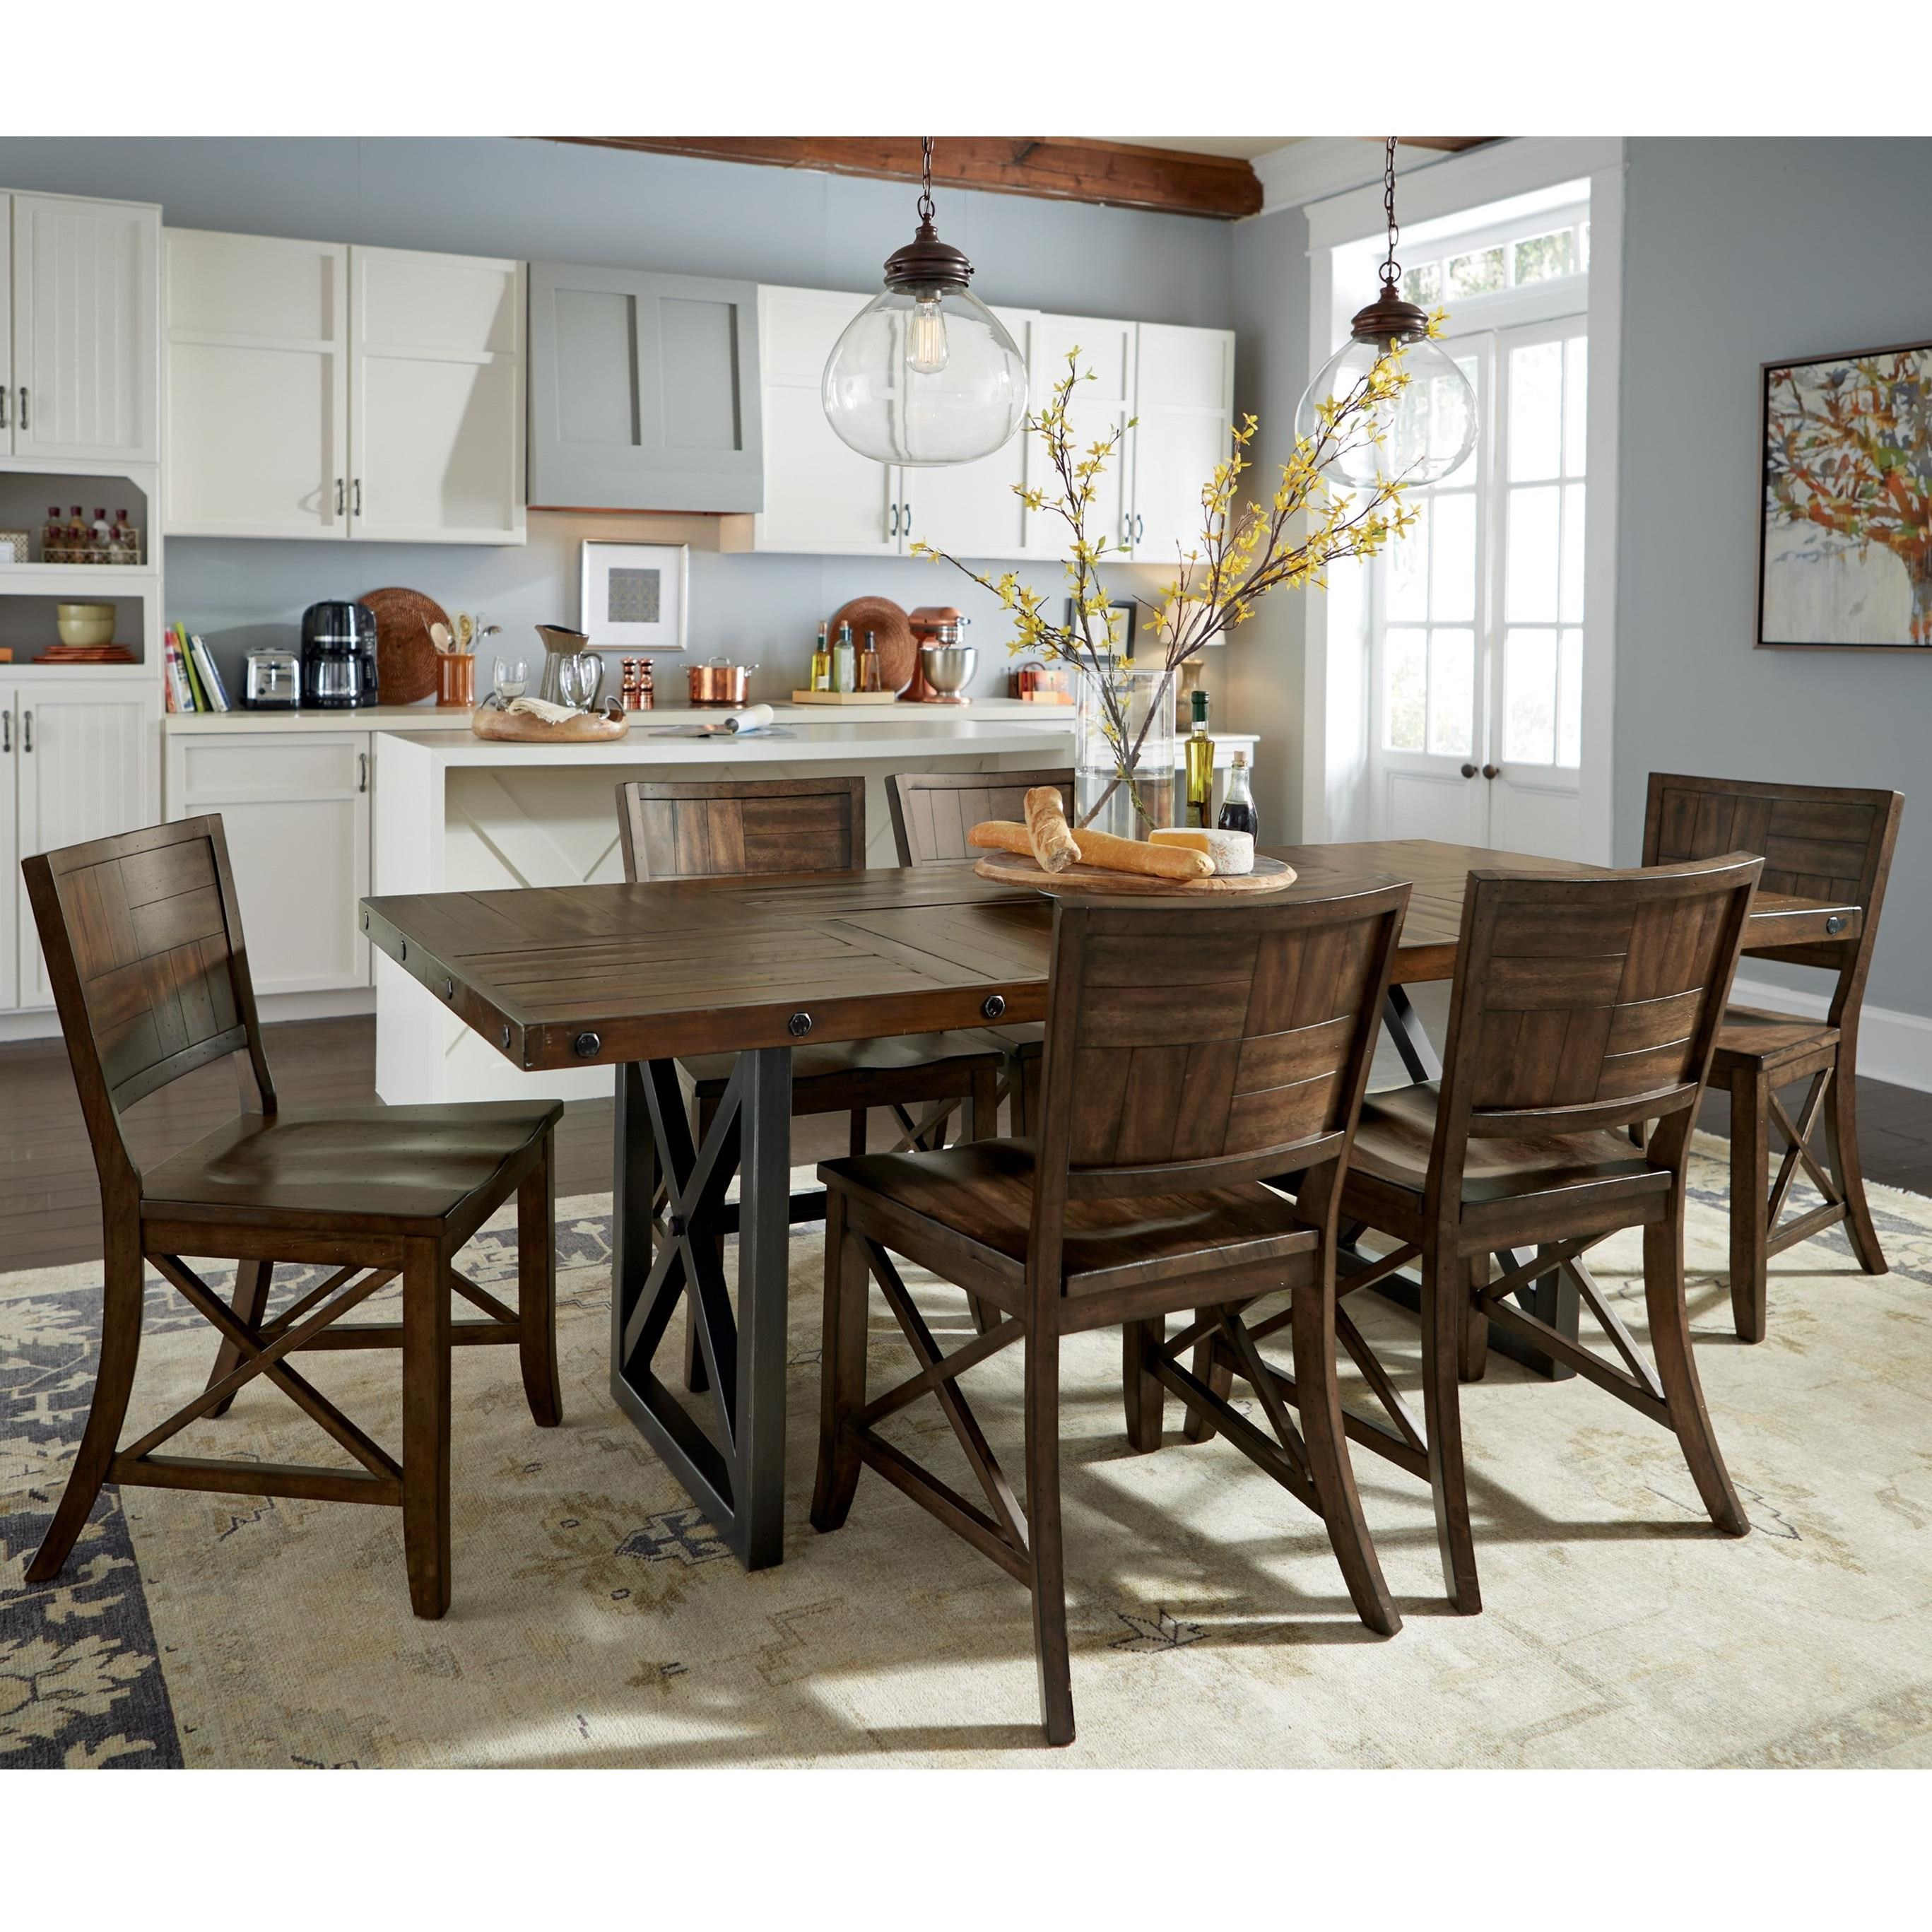 Flexsteel wynwood collection carpenter 7 piece dining set for John v schultz dining room table